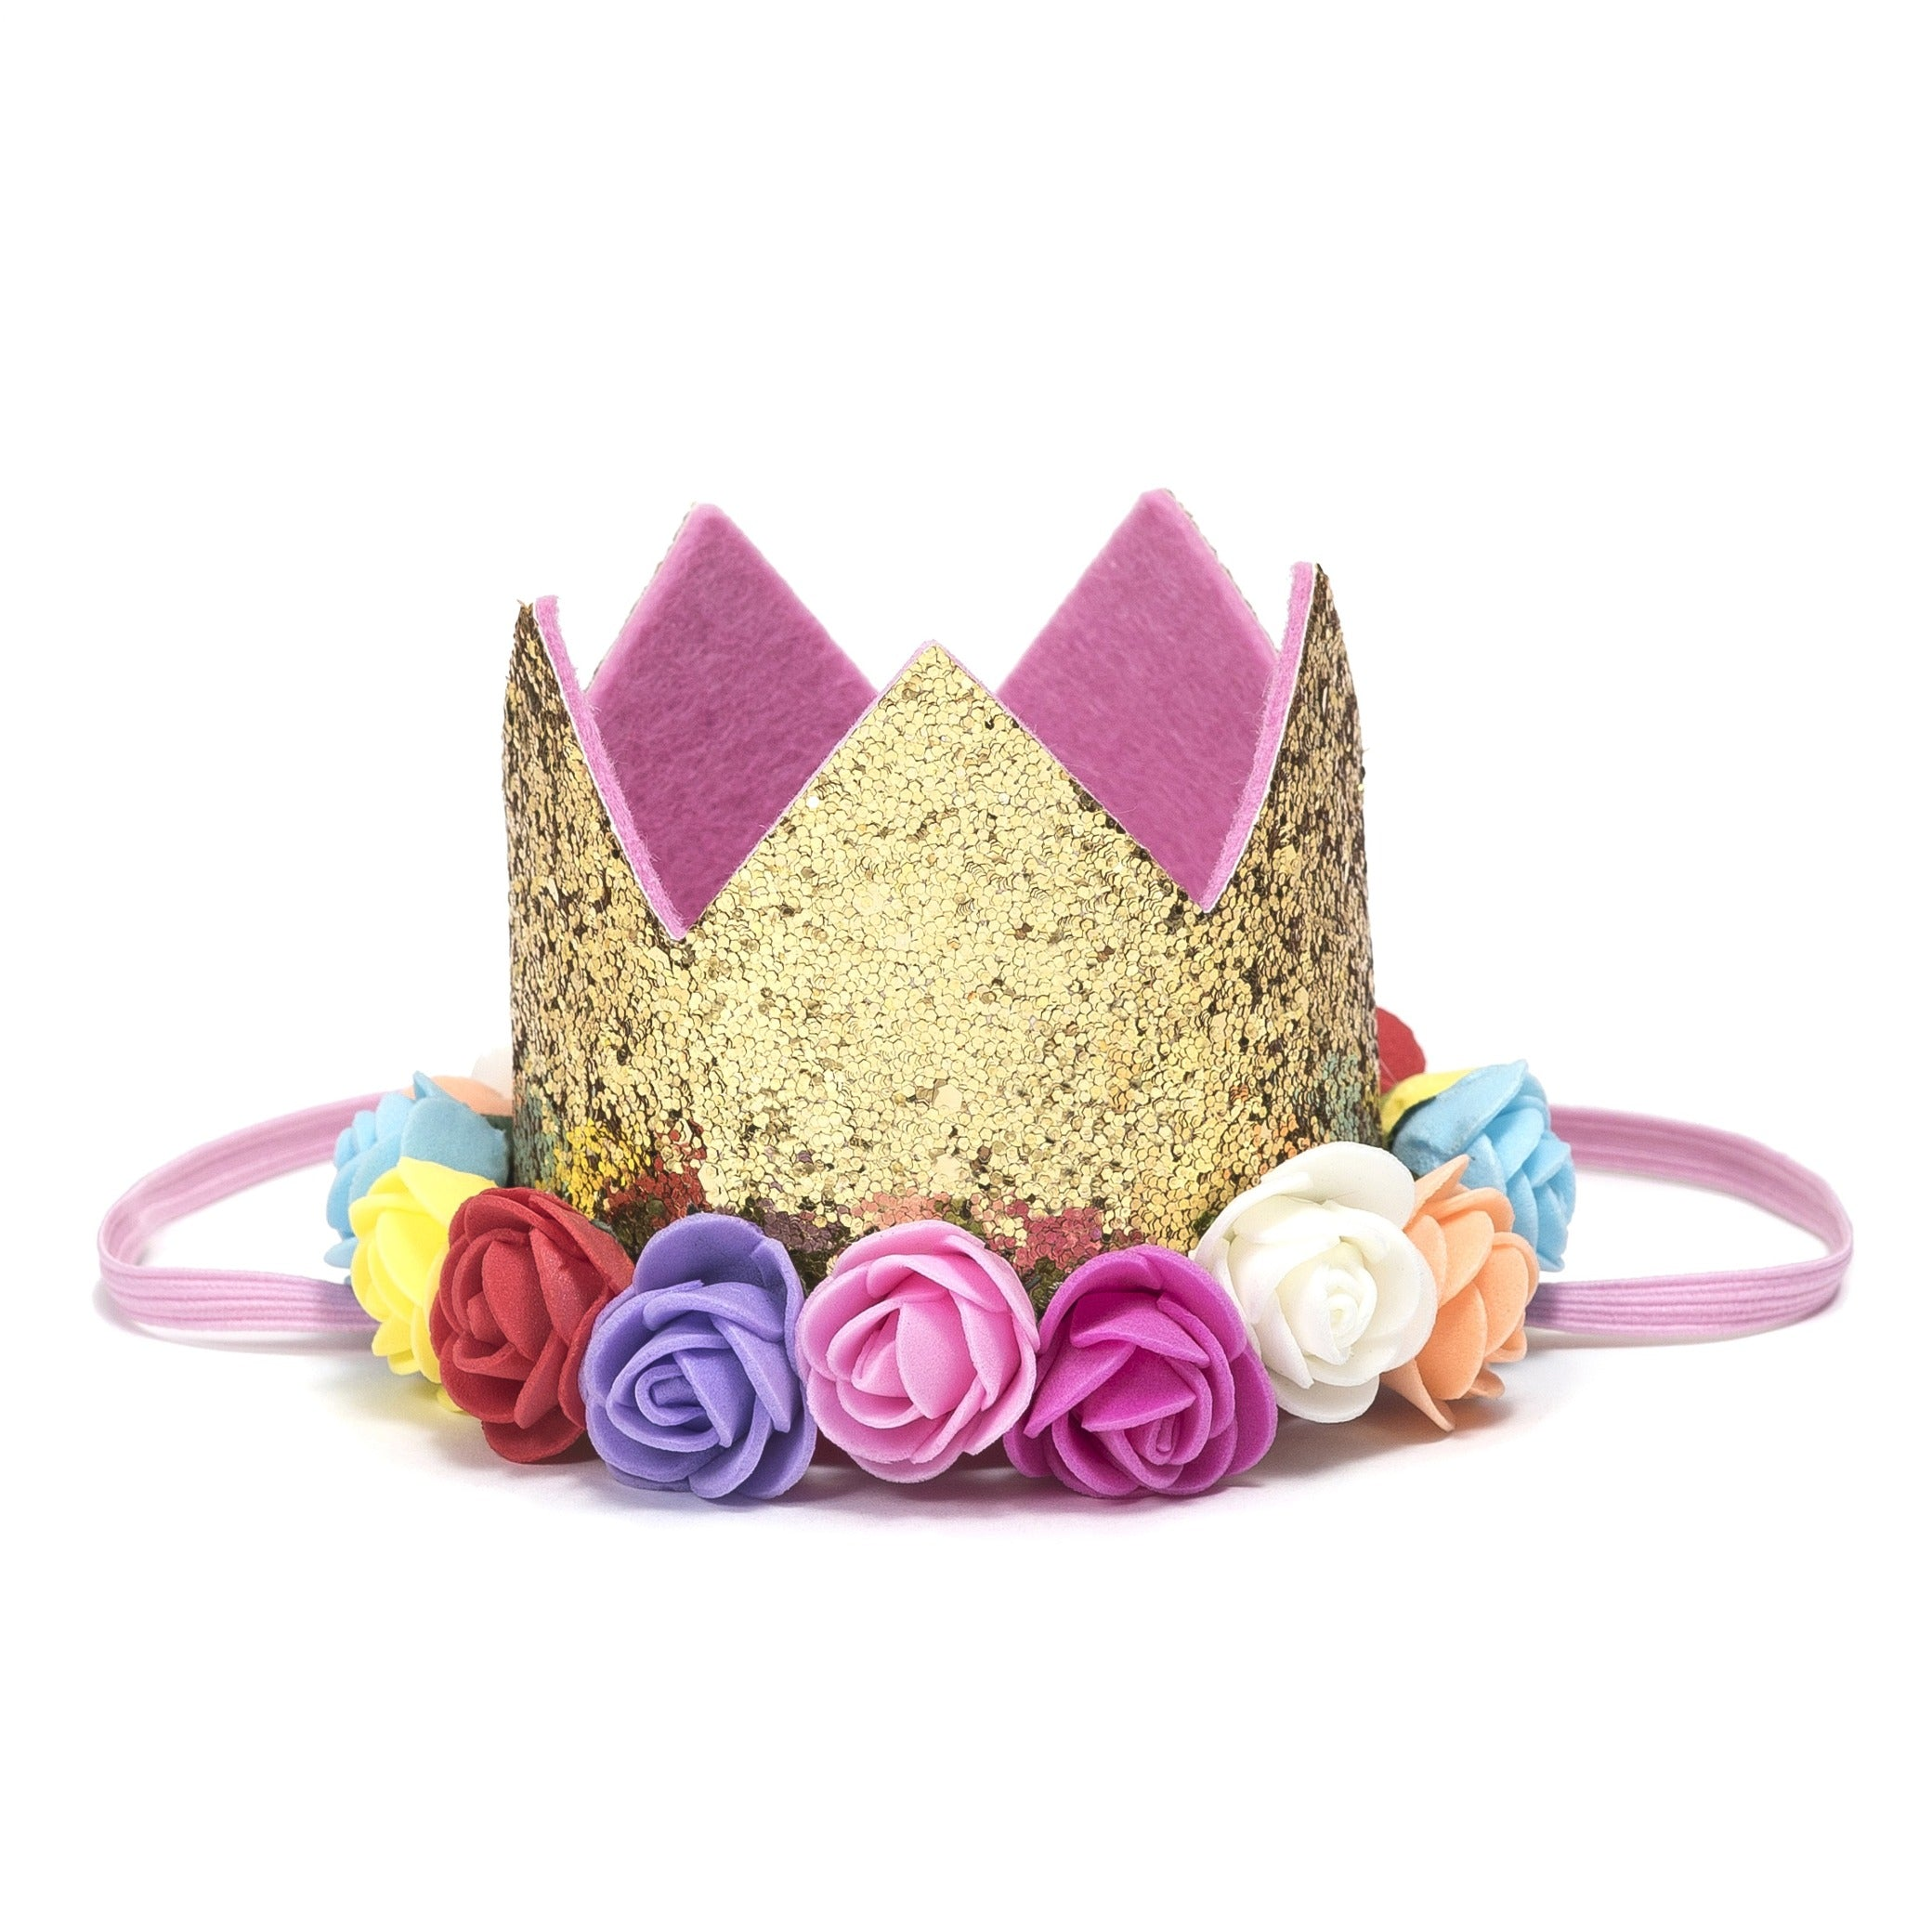 Sweet Wink gold rainbow floral crown